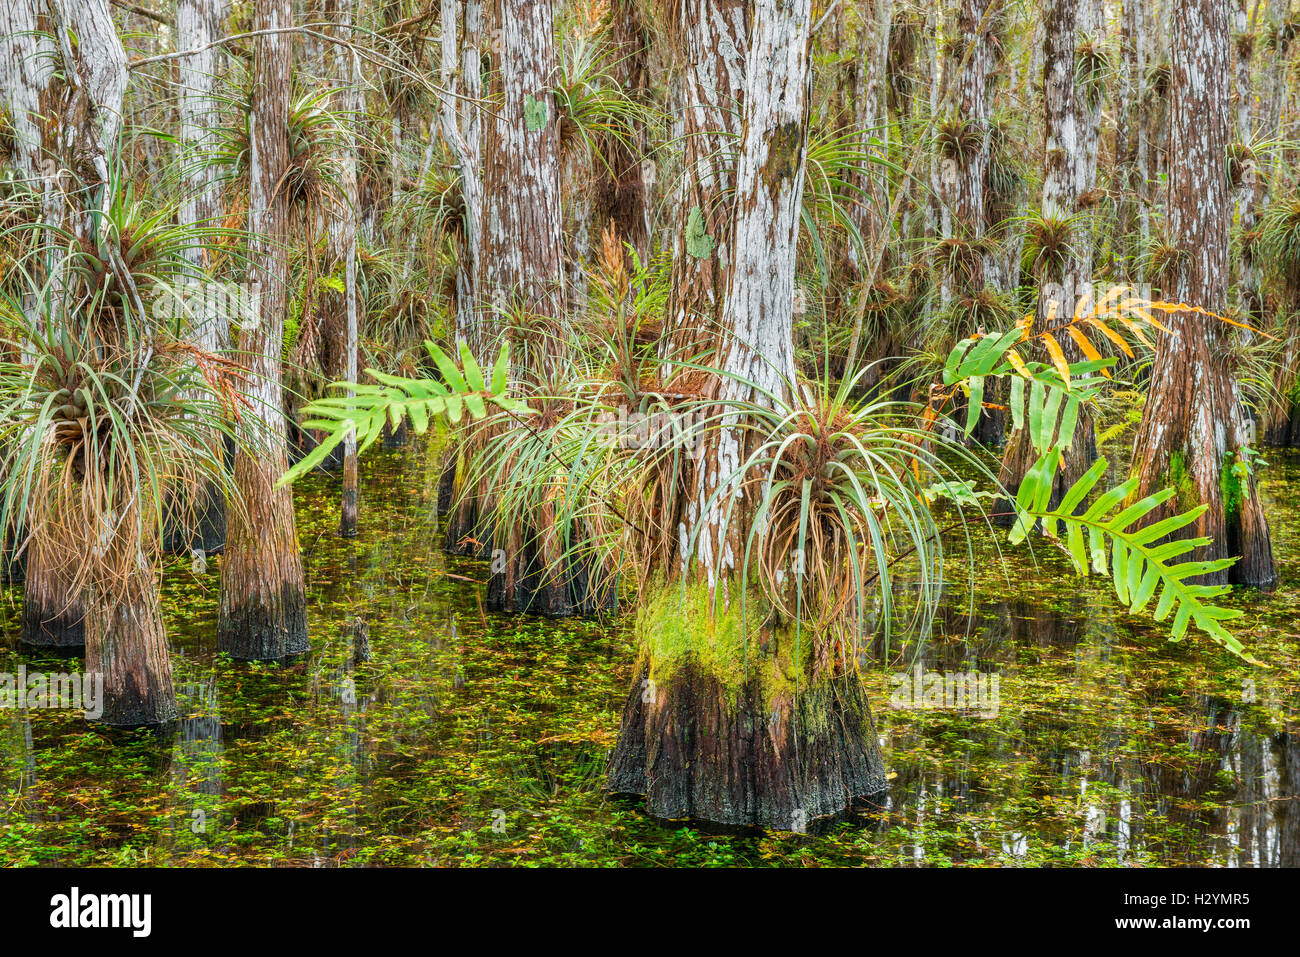 Bald cypress trees covered with bromeliads and ferns within a cypress dome - Everglades National Park Florida USA Stock Photo